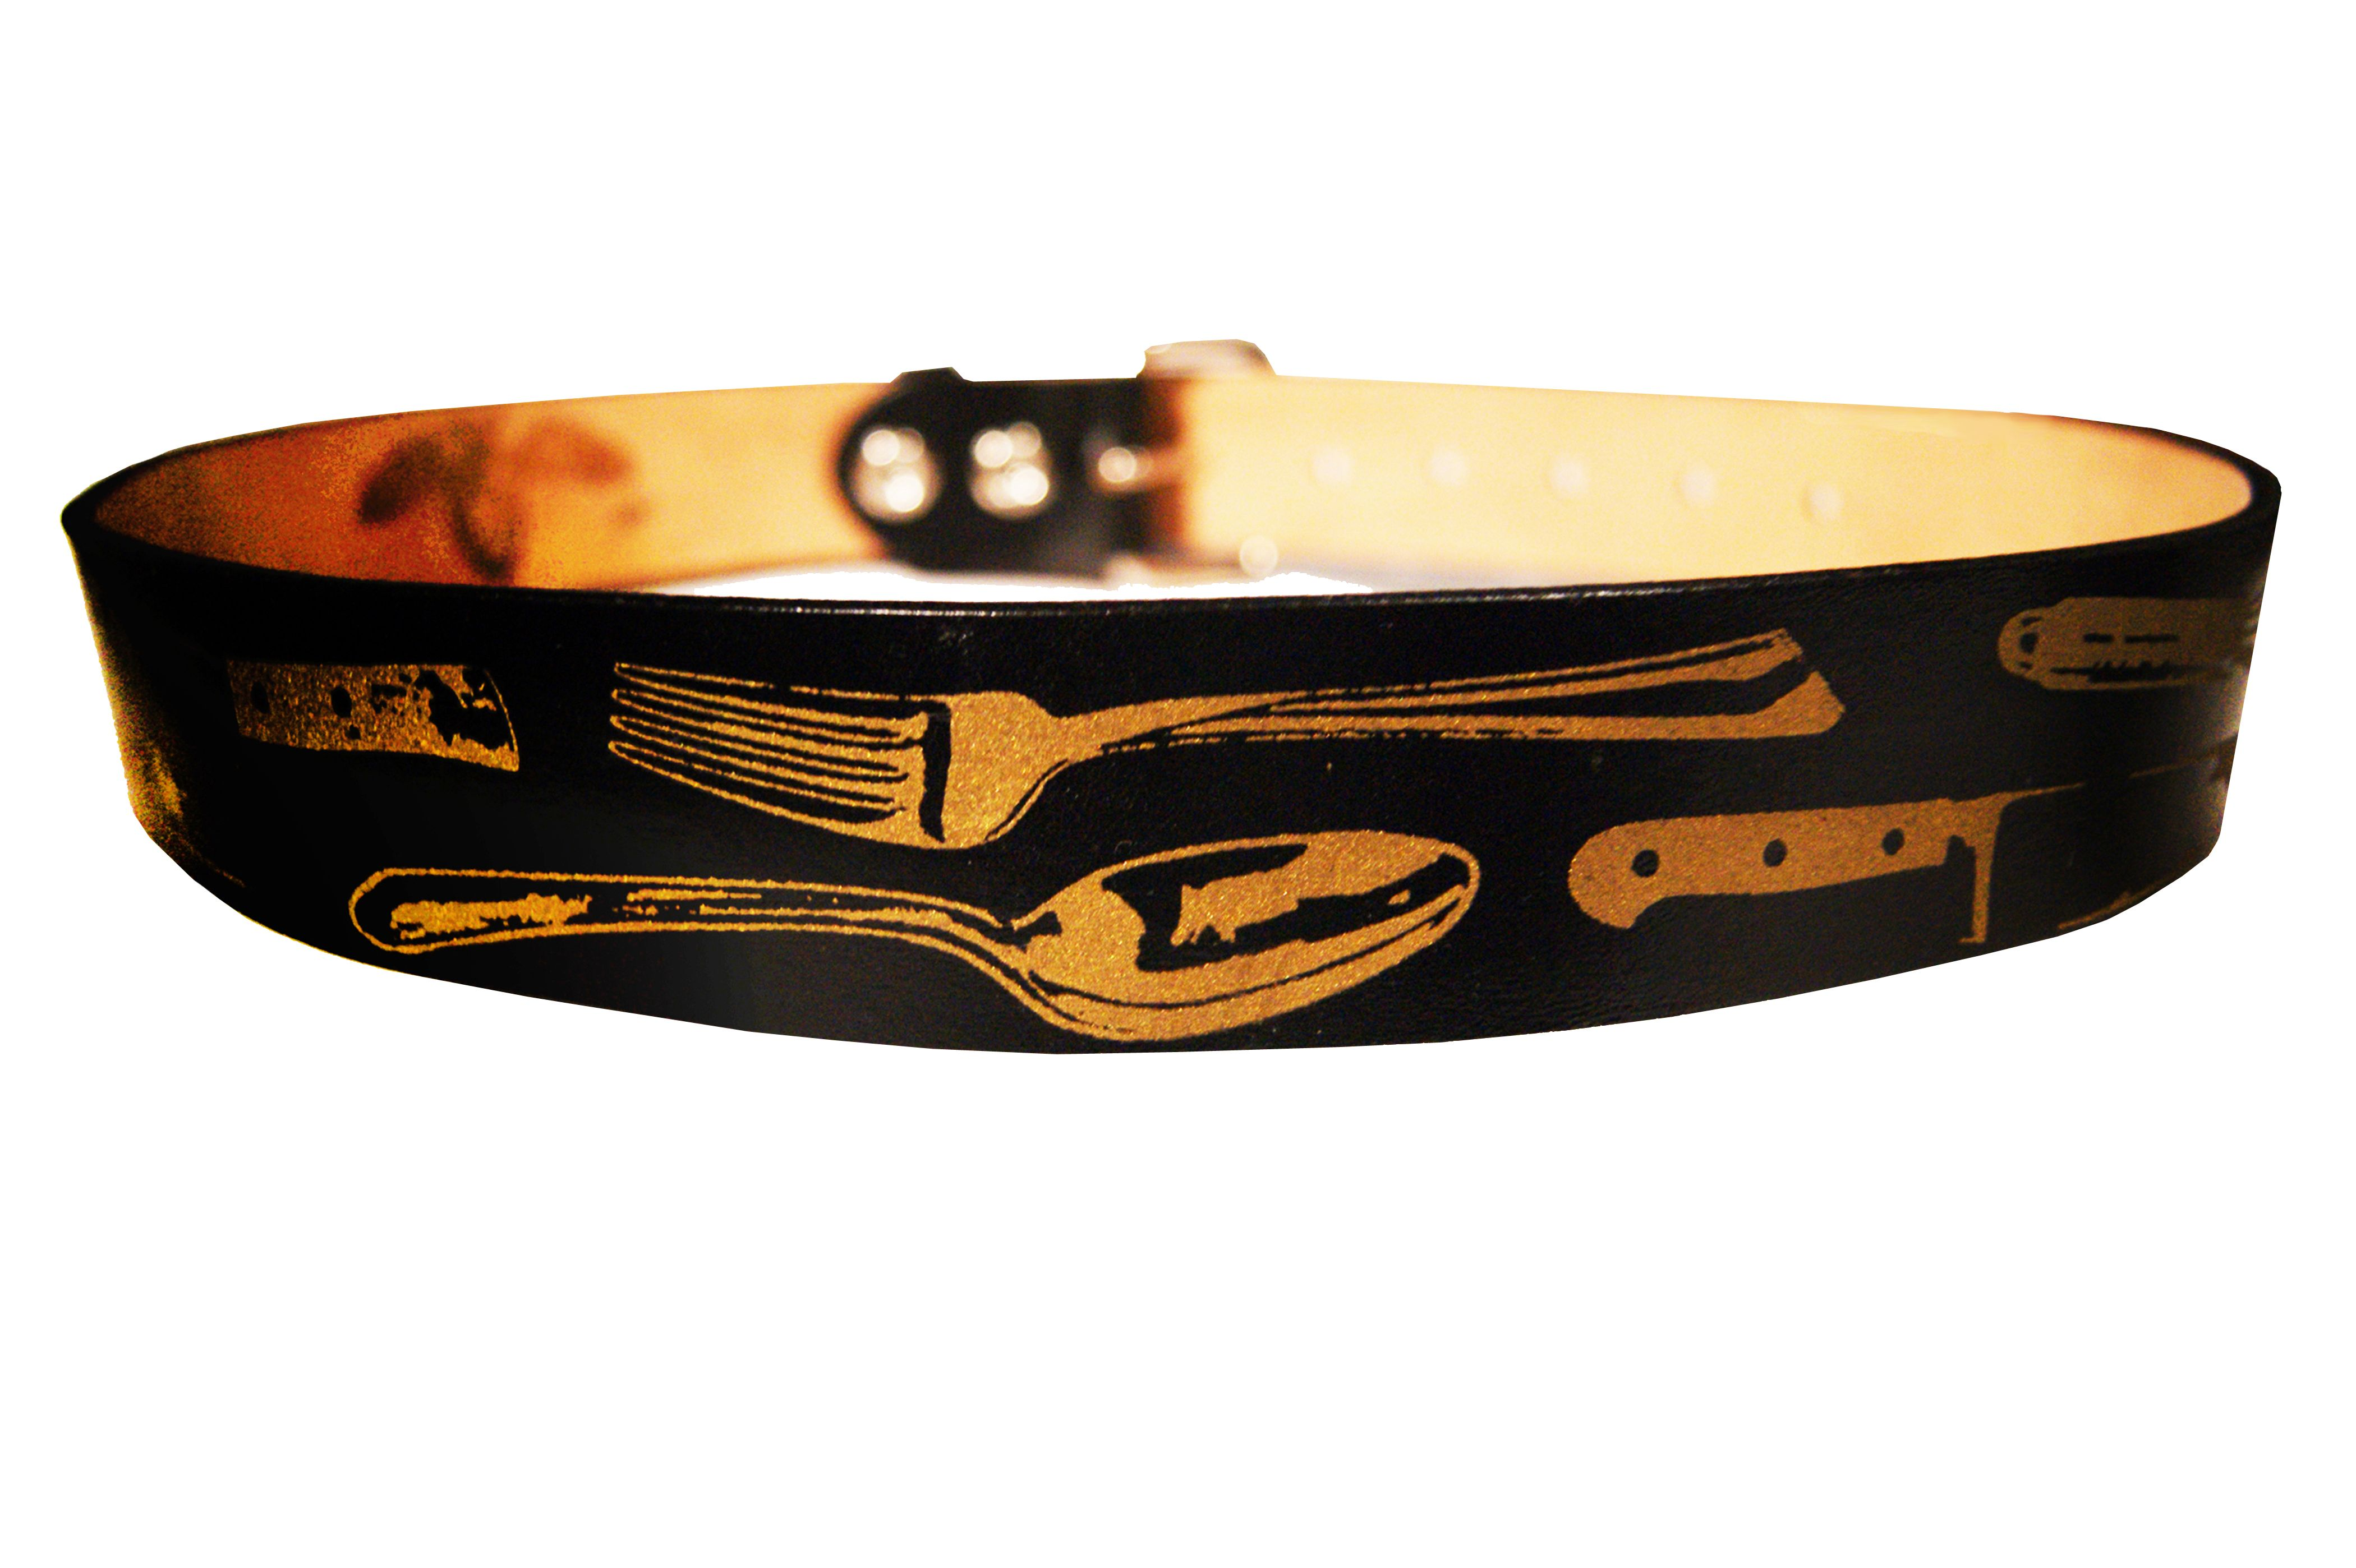 Jacob vaughn gushue project transaction roslindale ma chef inspired leather belt gamestrikefo Gallery